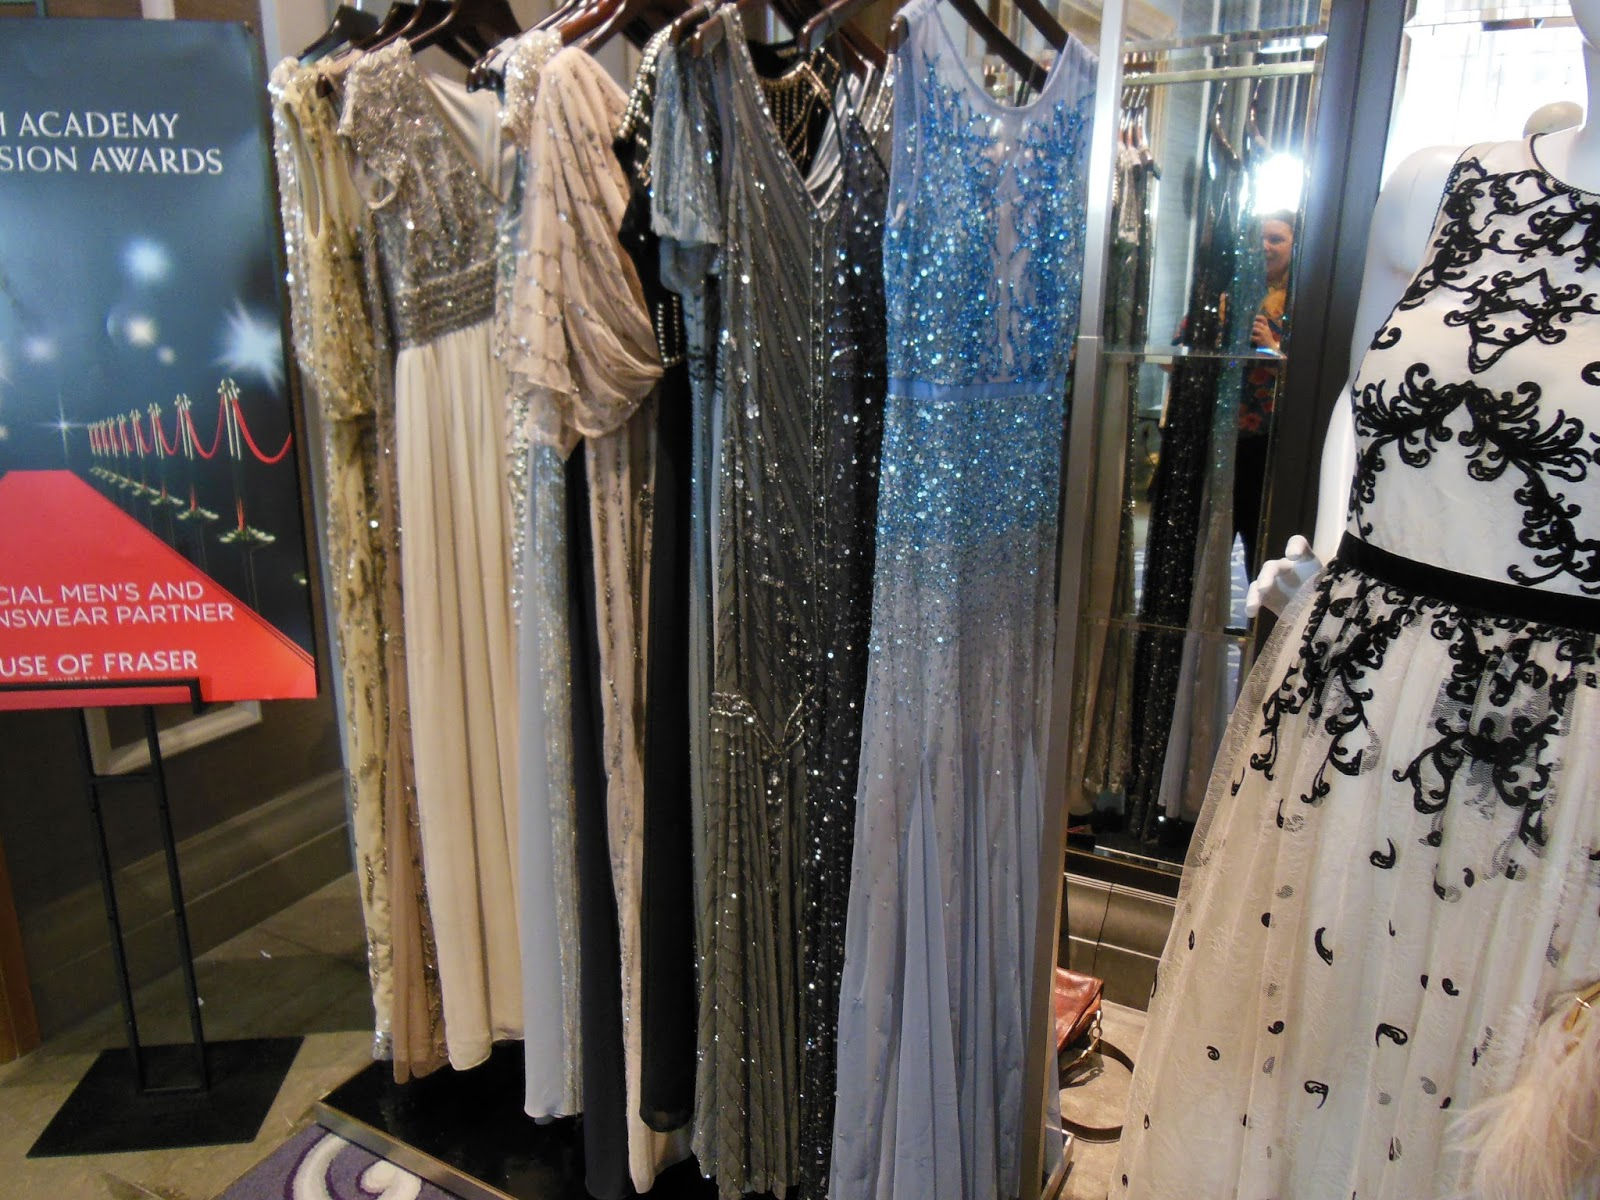 BAFTA dresses from House of Fraser